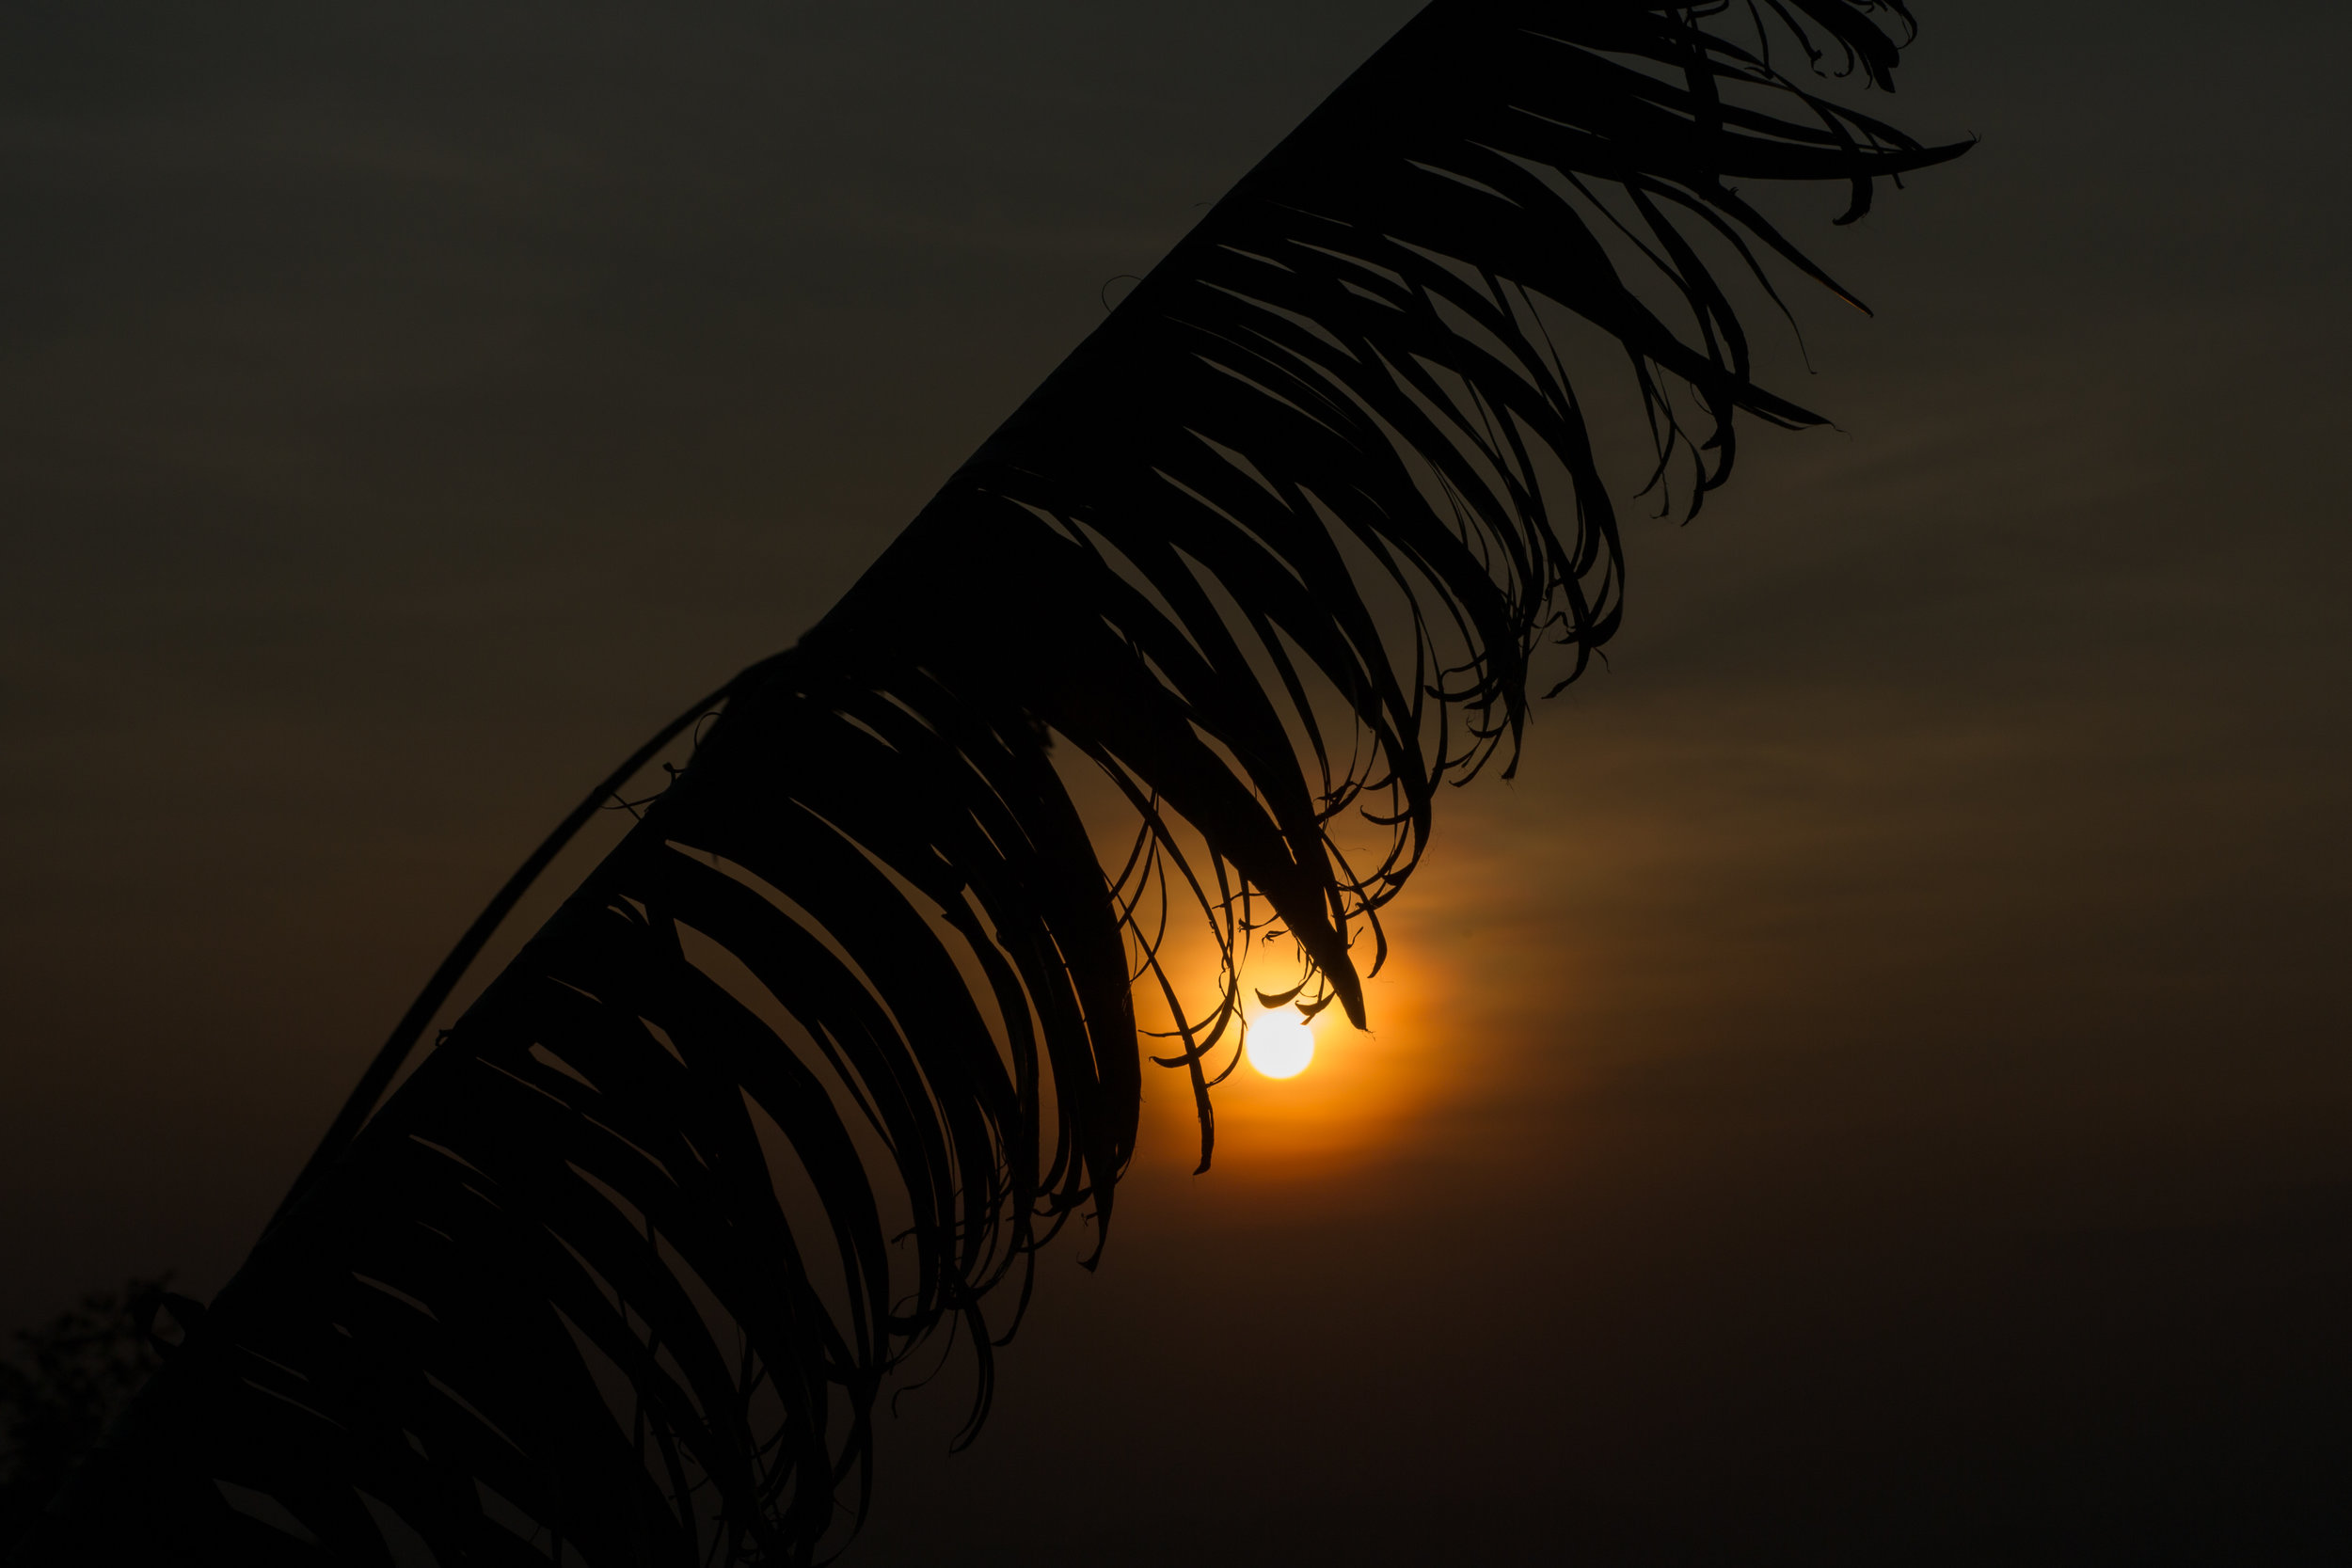 The sun sets in Hong kong by a palm tree branch